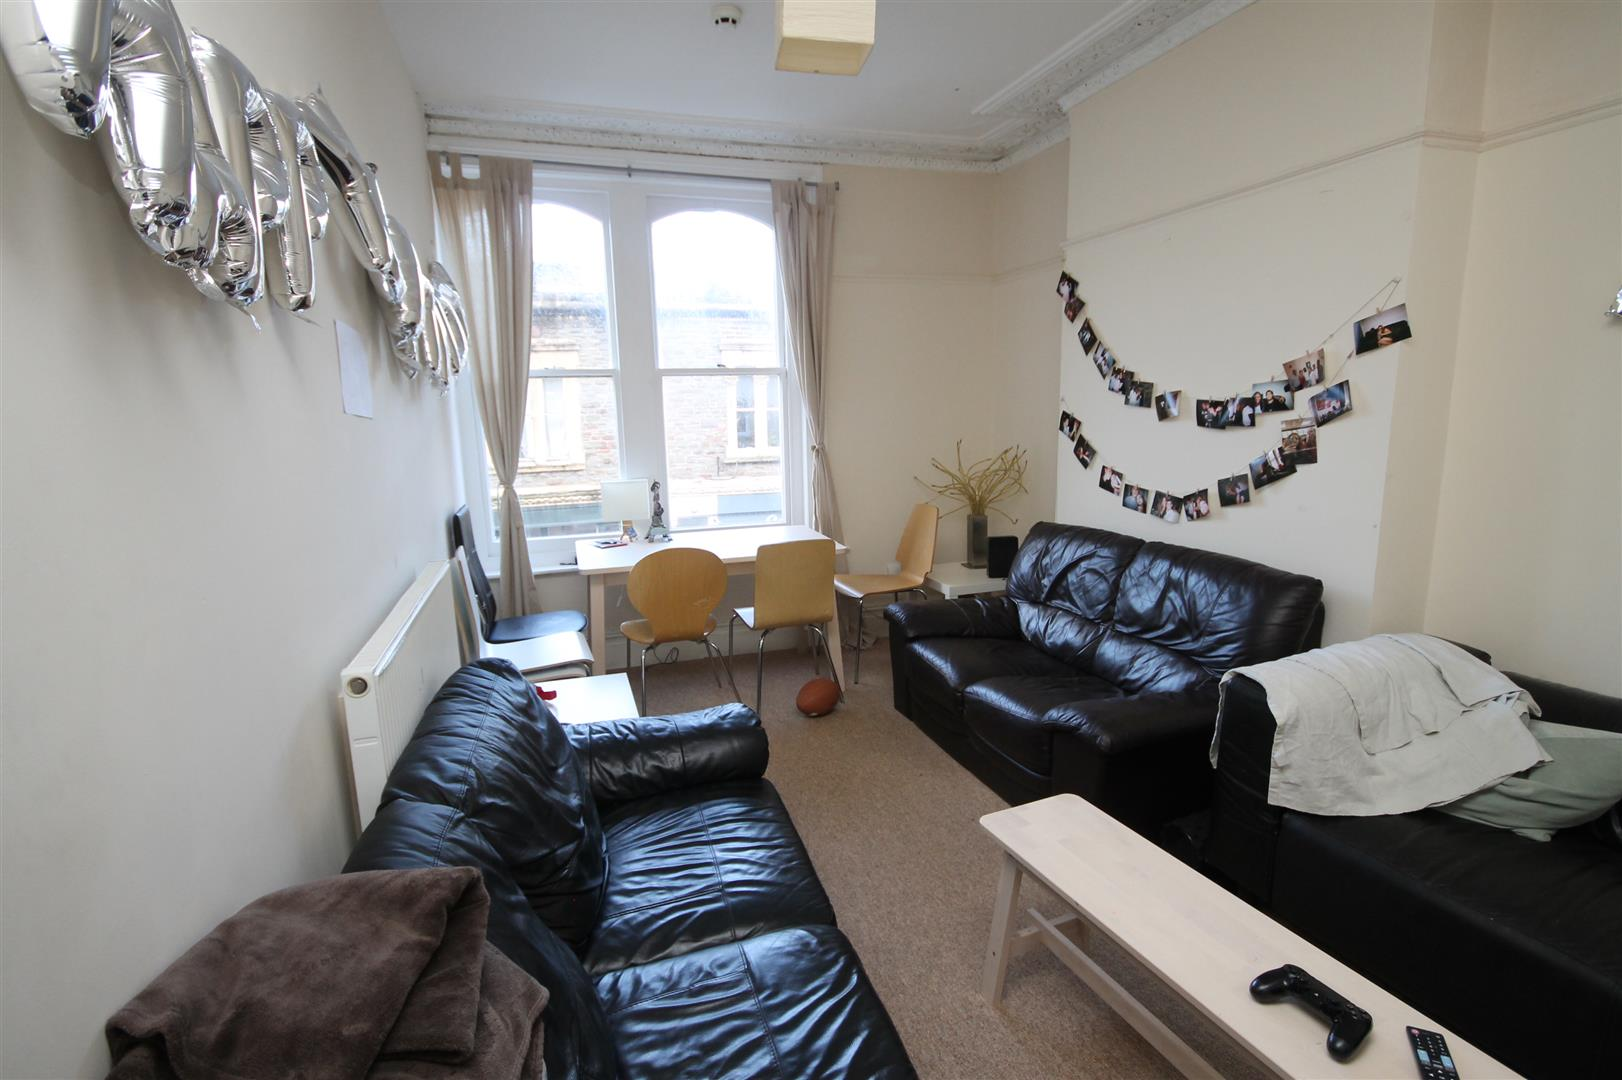 6 bed flat to rent in Chandos Road, Bristol - Property Image 1